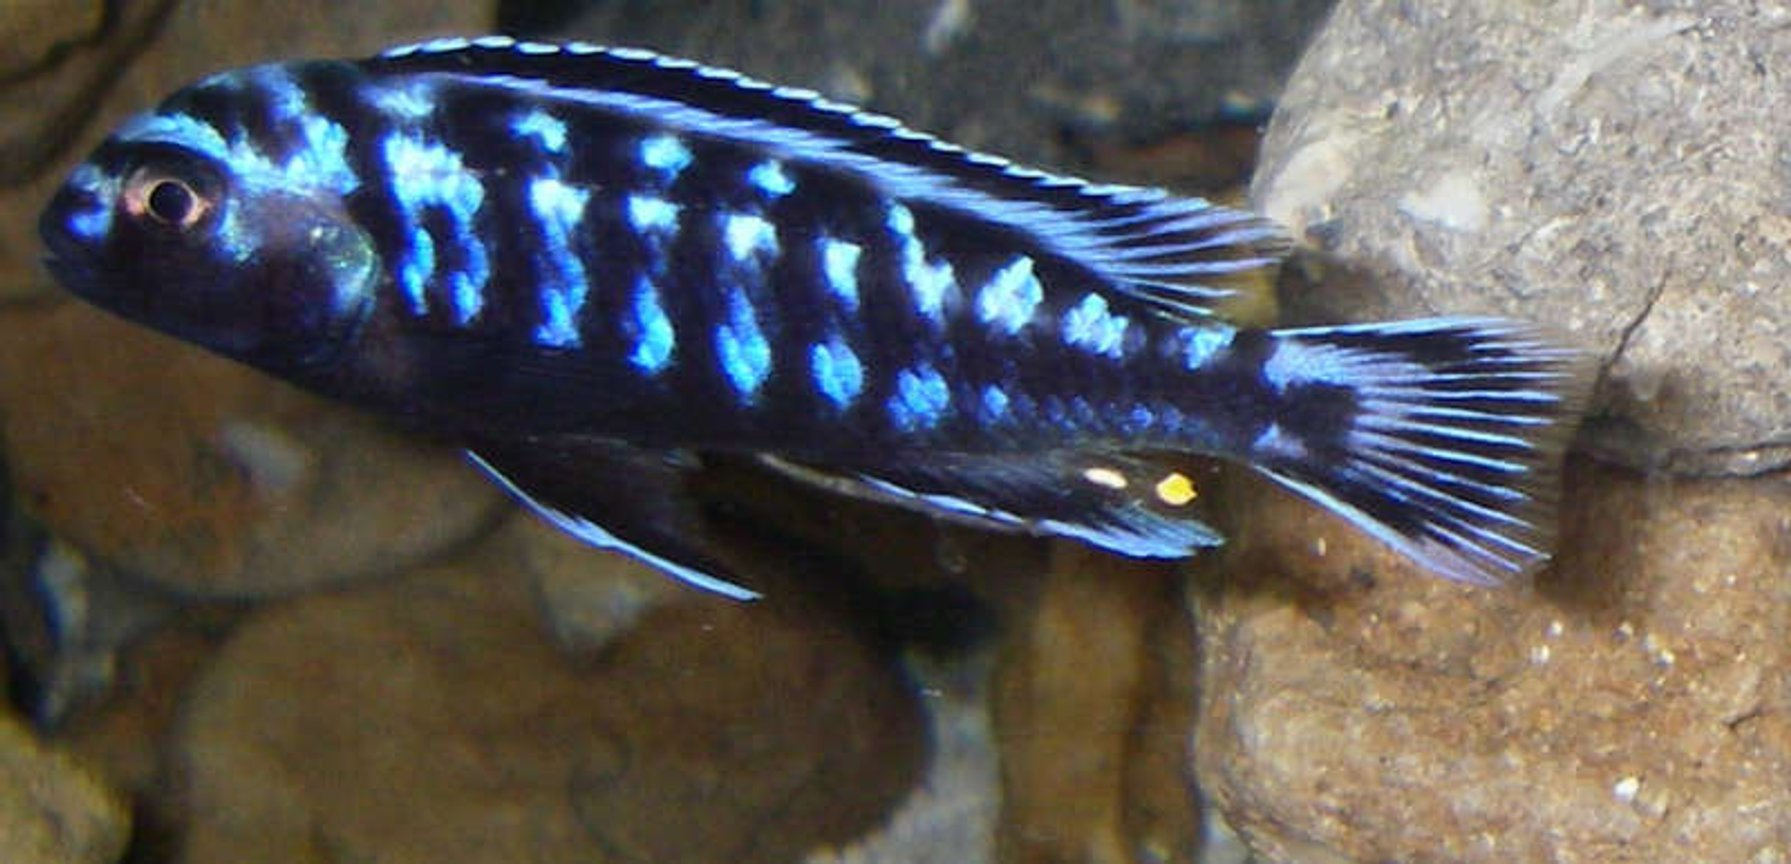 freshwater fish - melanochromis johannii - johanni cichlid stocking in 29 gallons tank - Electric blue johanni